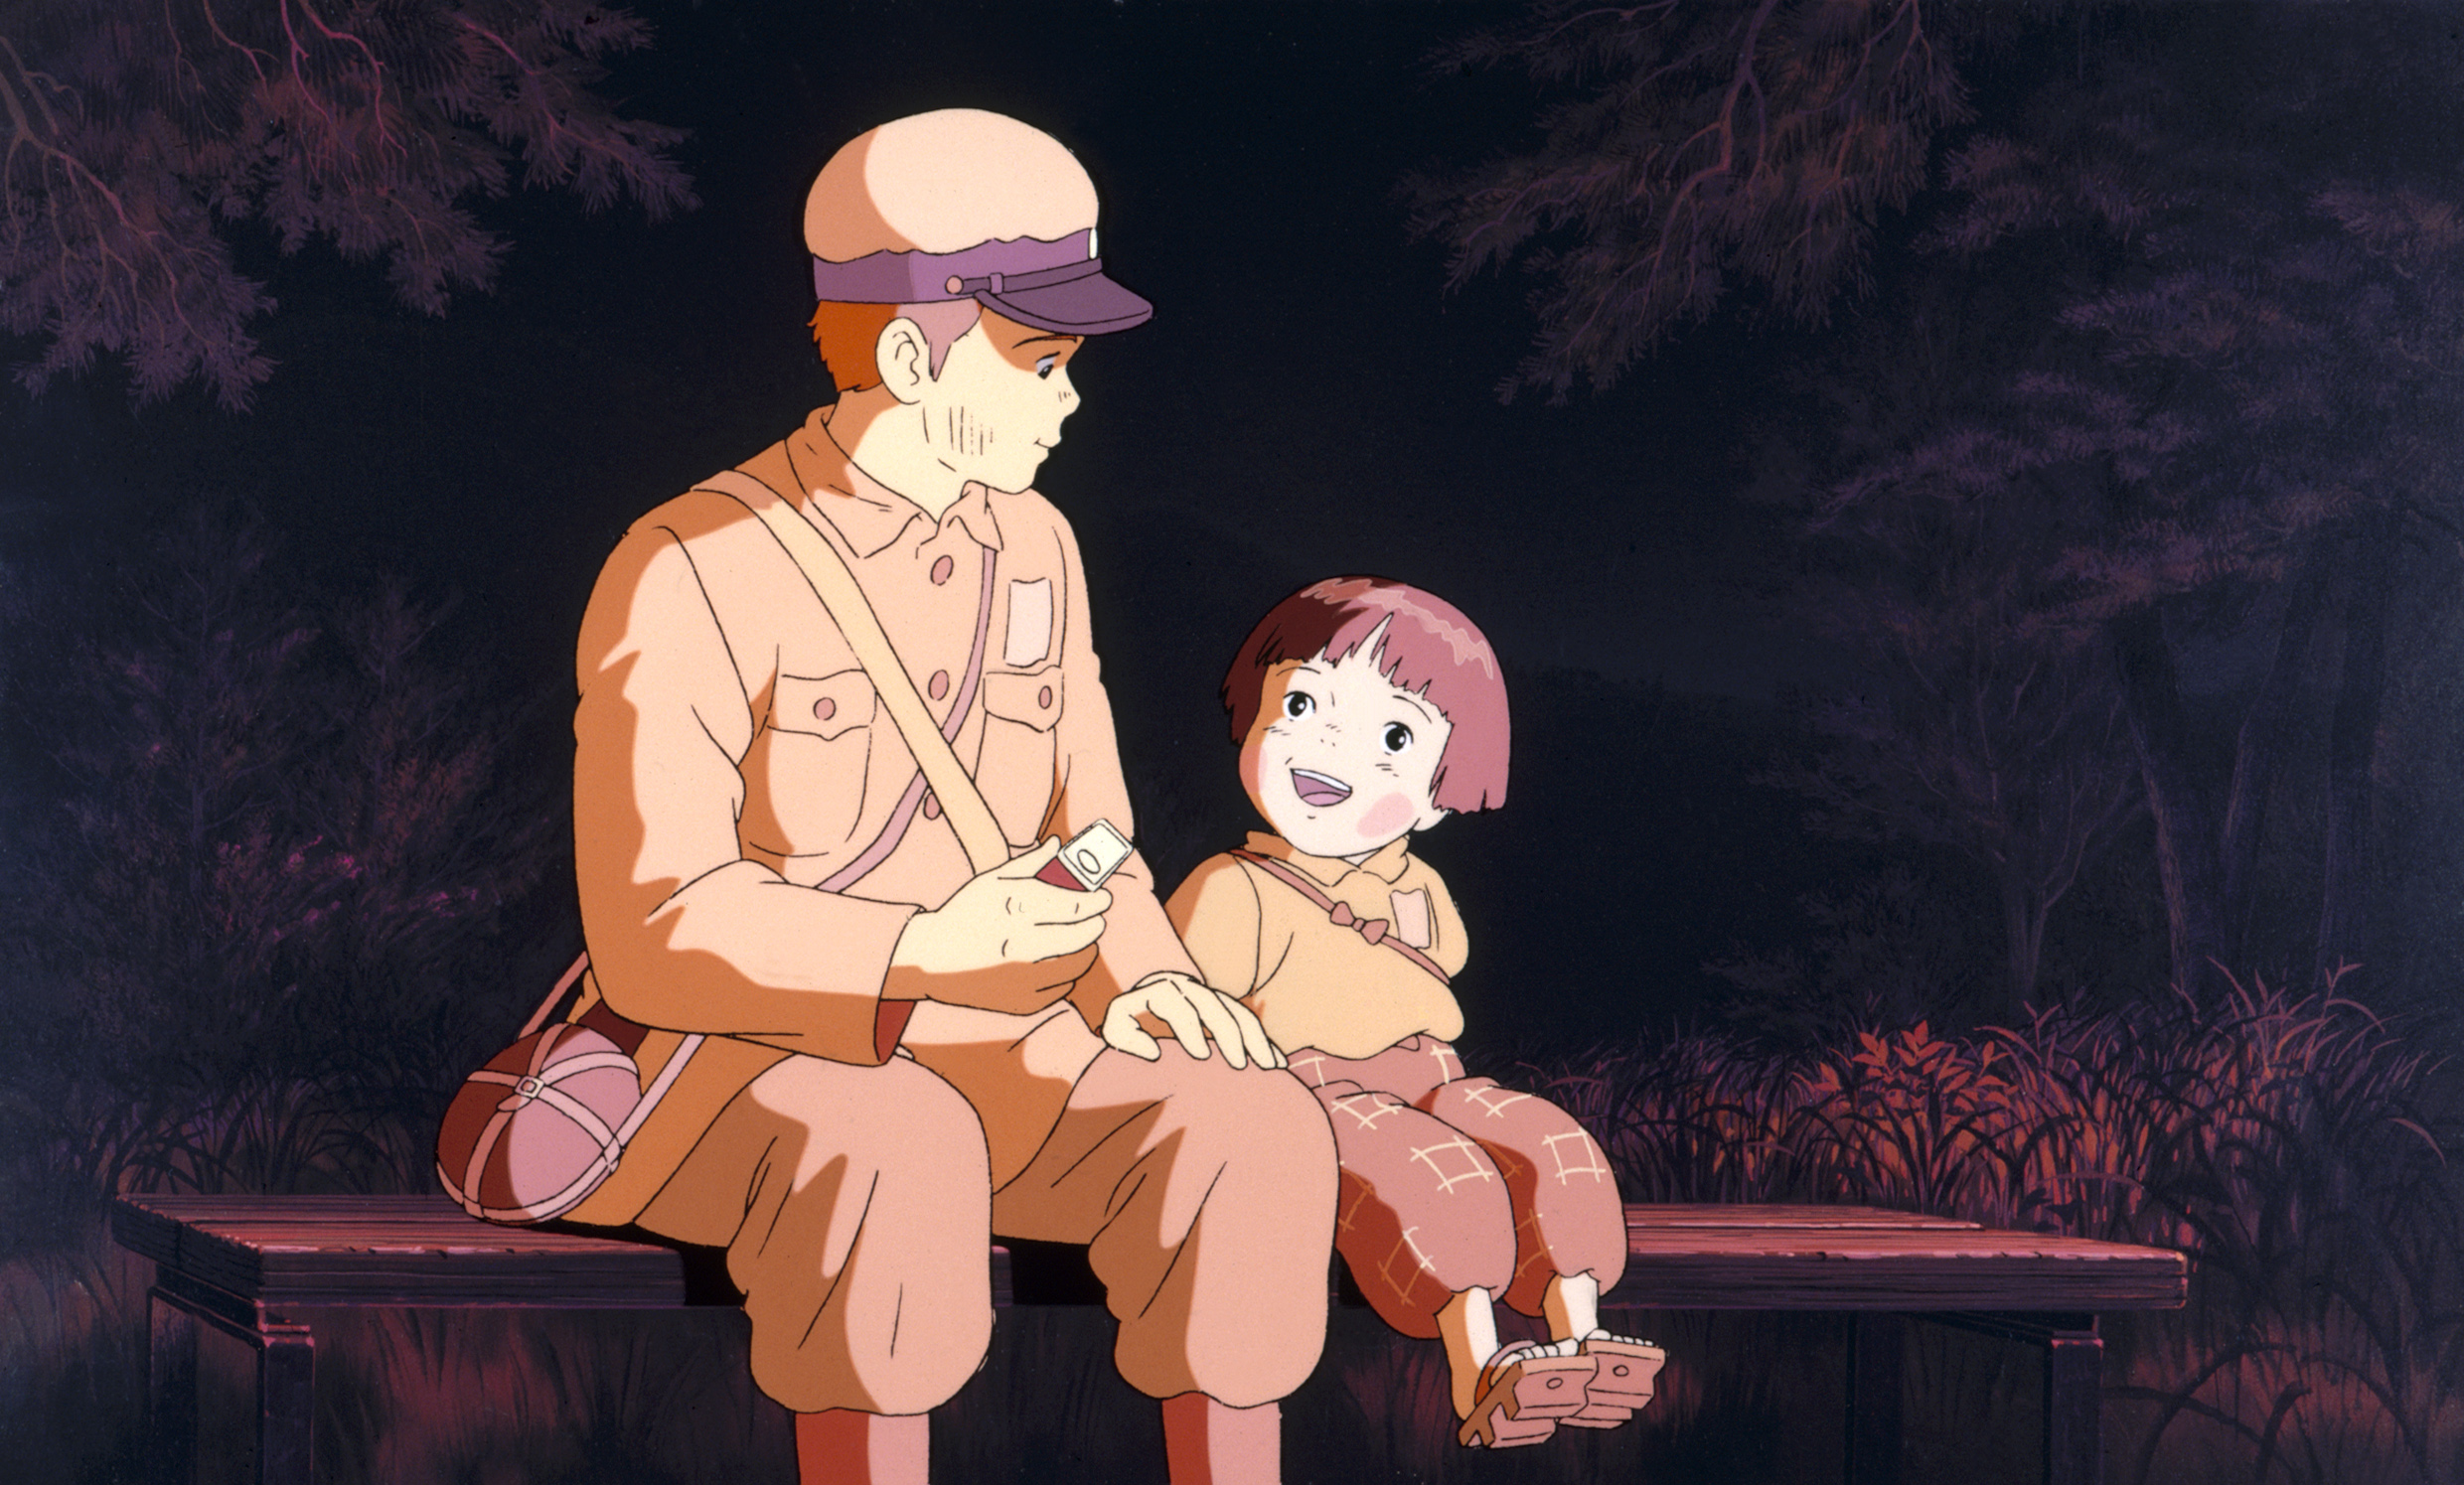 A young Japanese boy and his younger sister sit on a bench together in Grave of the Fireflies